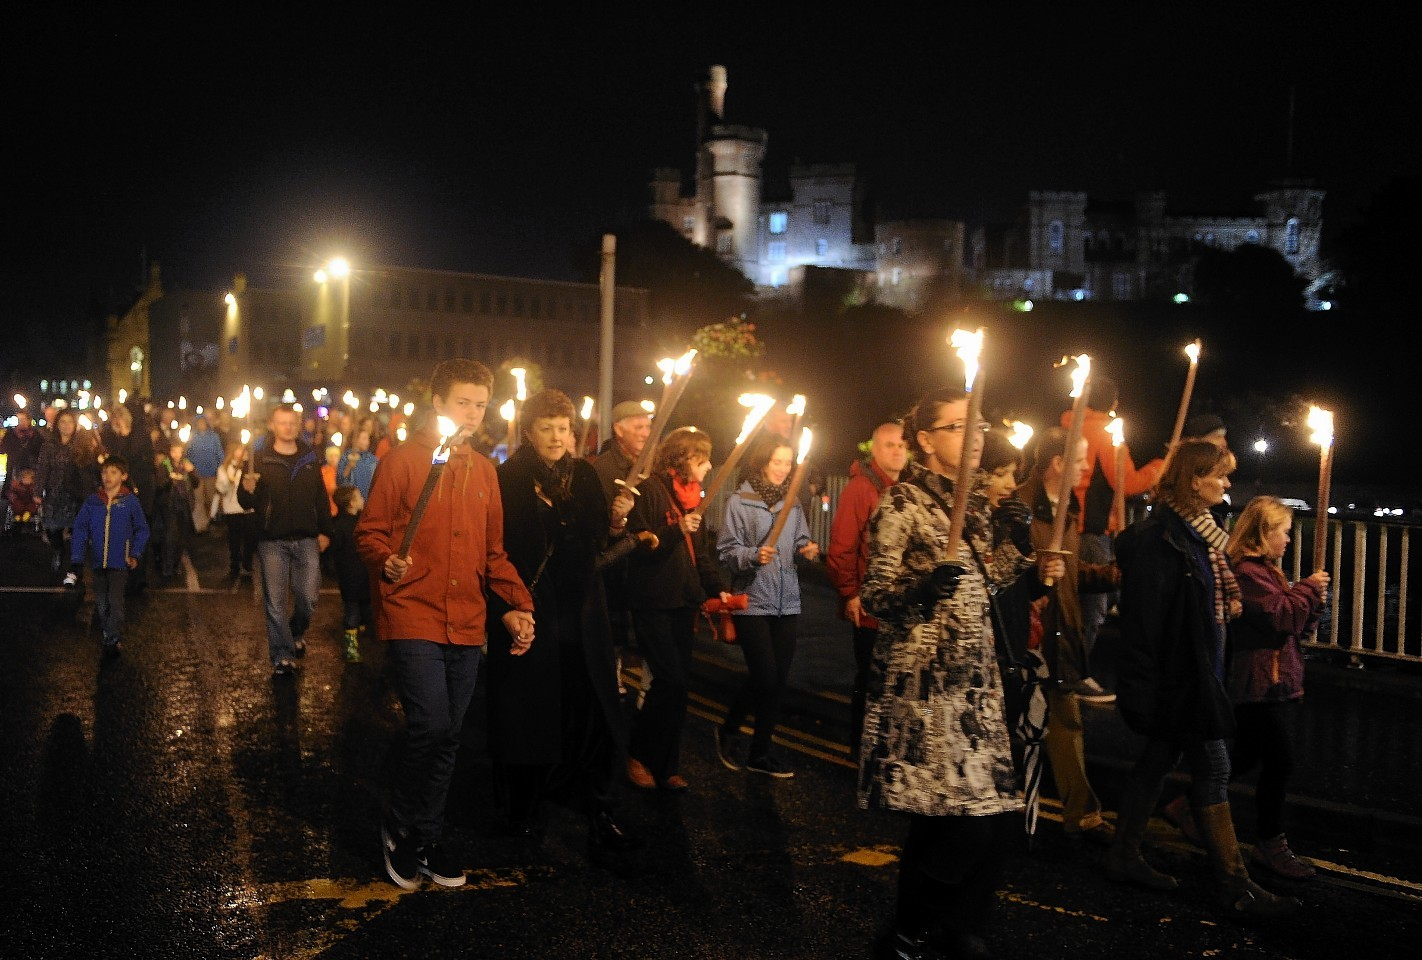 Royal National Mod torchlight procession through Inverness